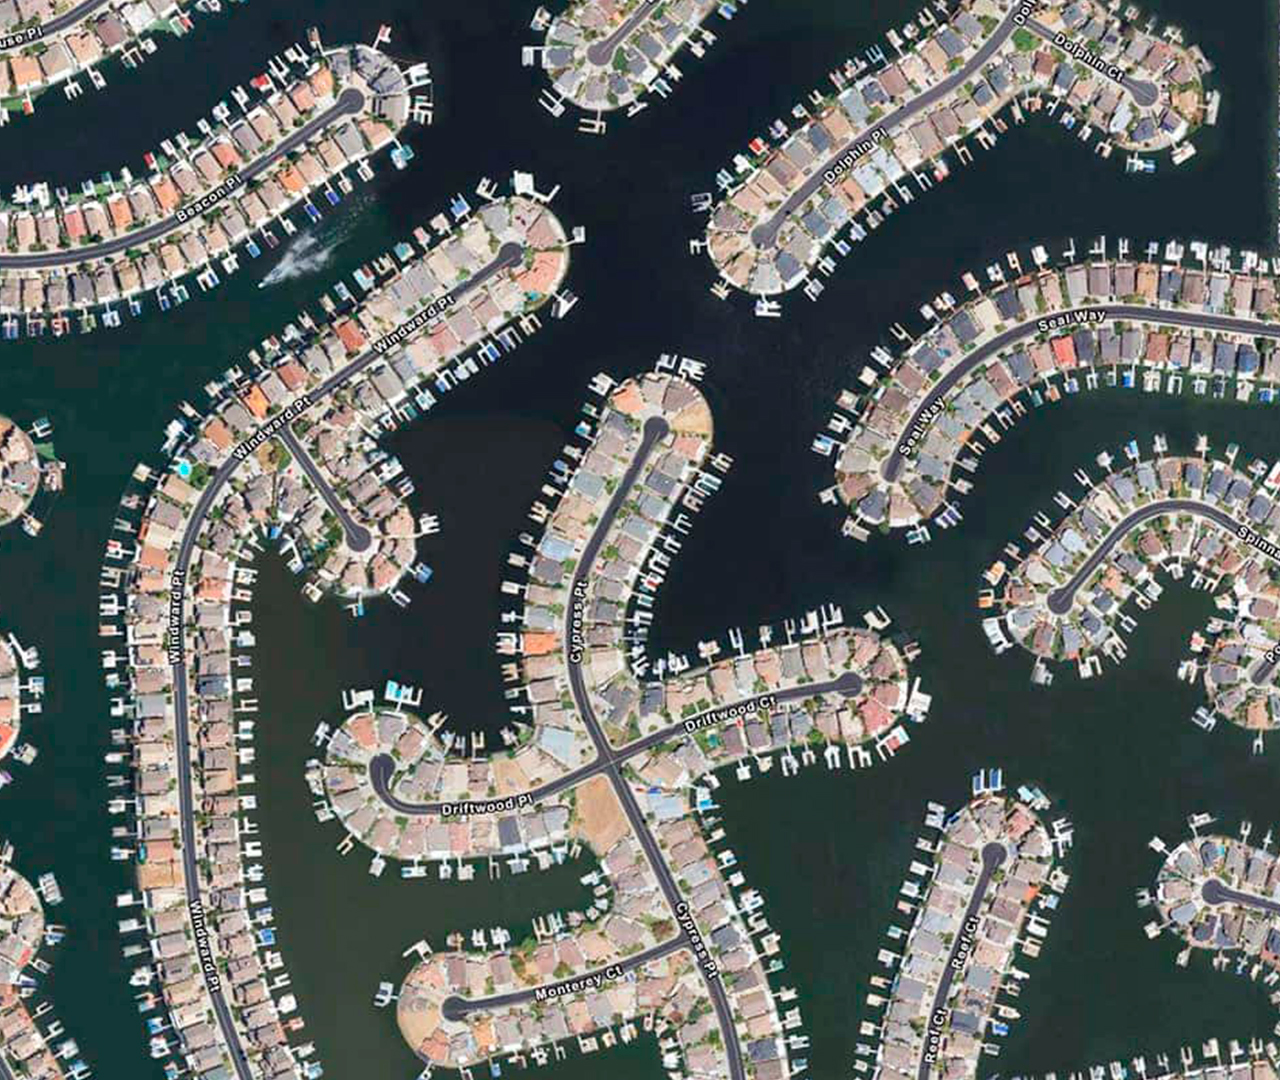 Imagery Content Worlds Largest Online Imagery Collection - High resolution aerial maps